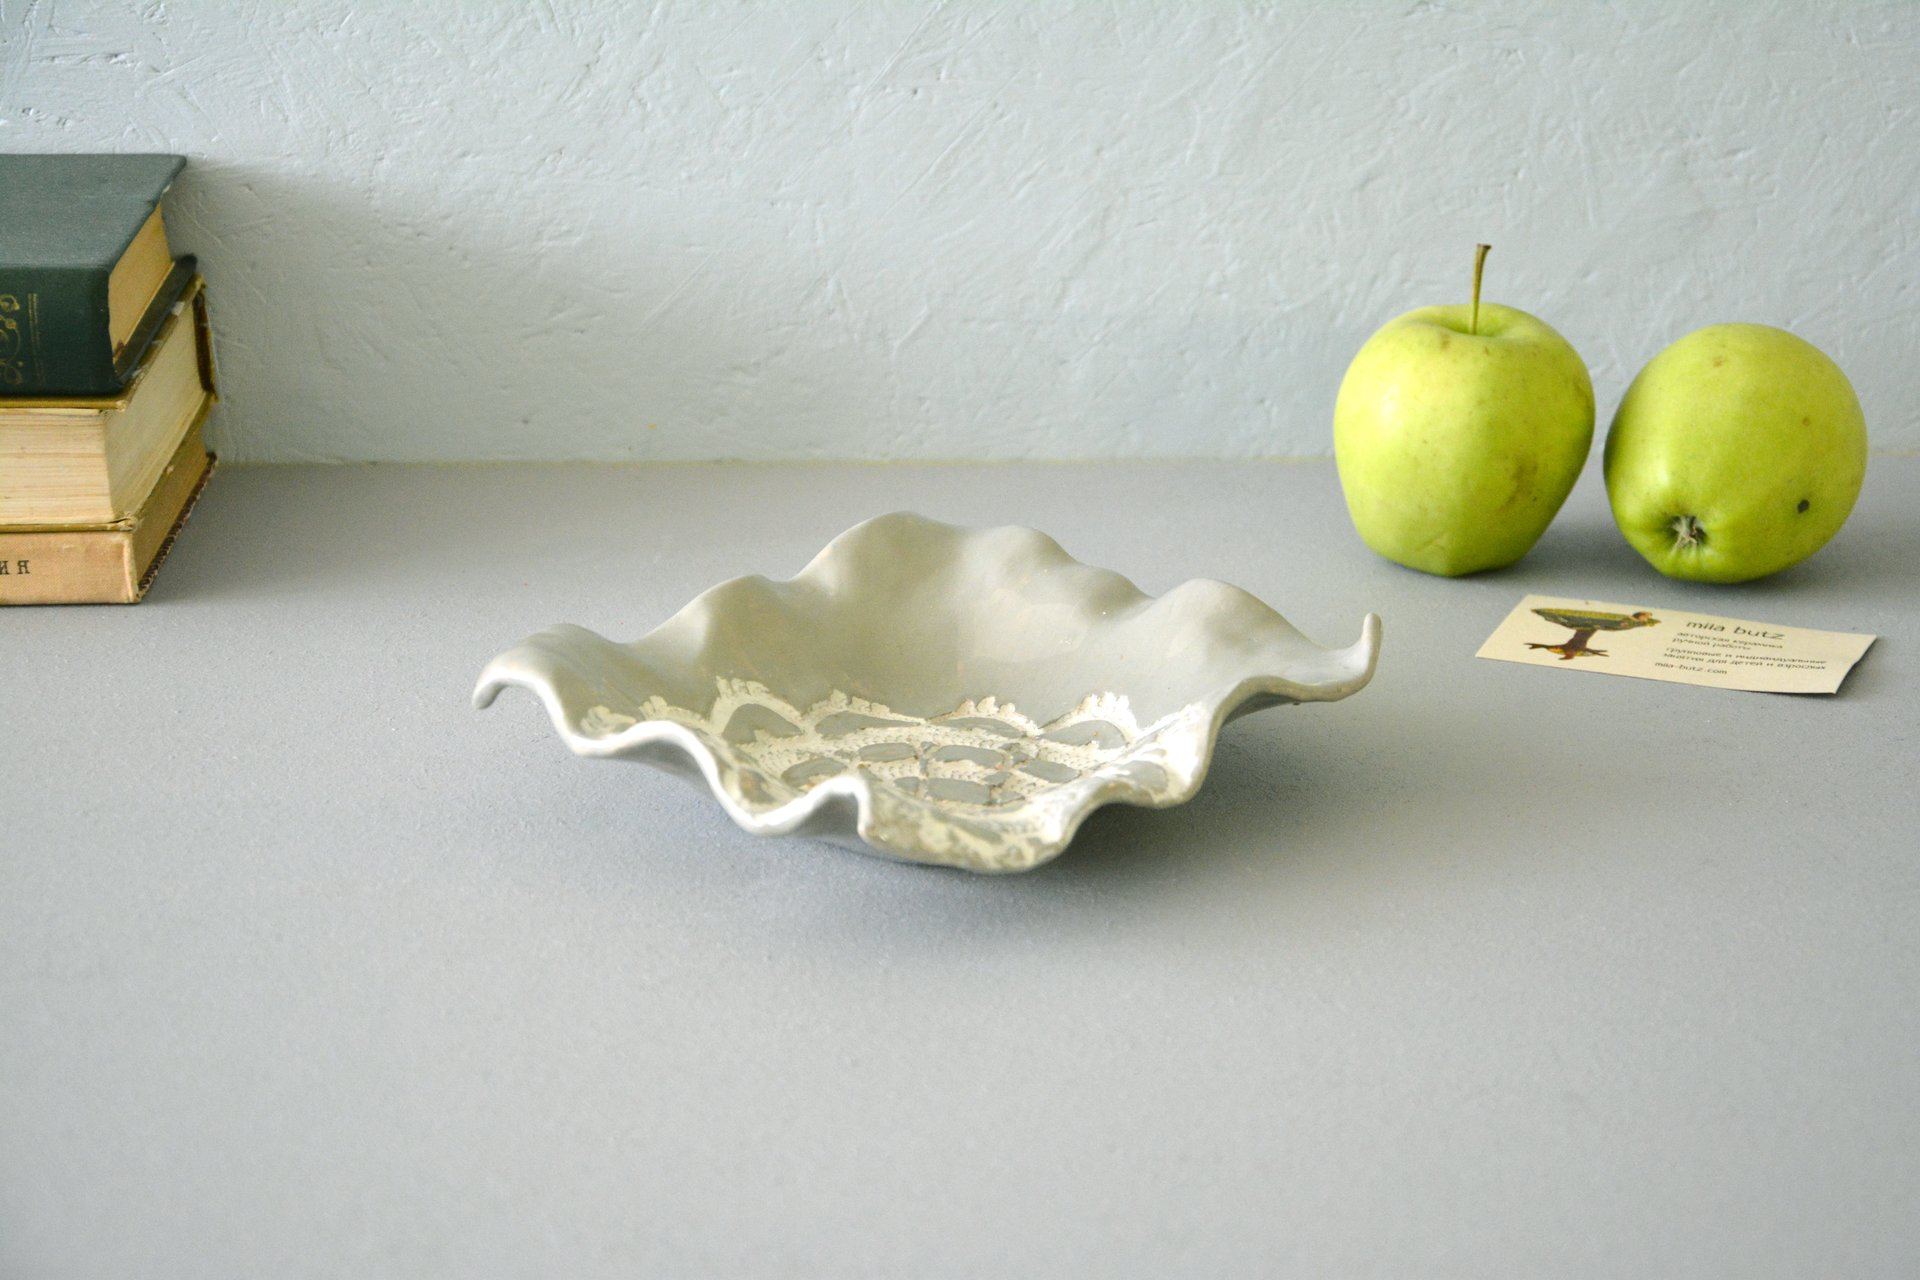 Ceramic square plate of gray color, length, width - 16 cm, height - 4 cm, photo 2 of 4.